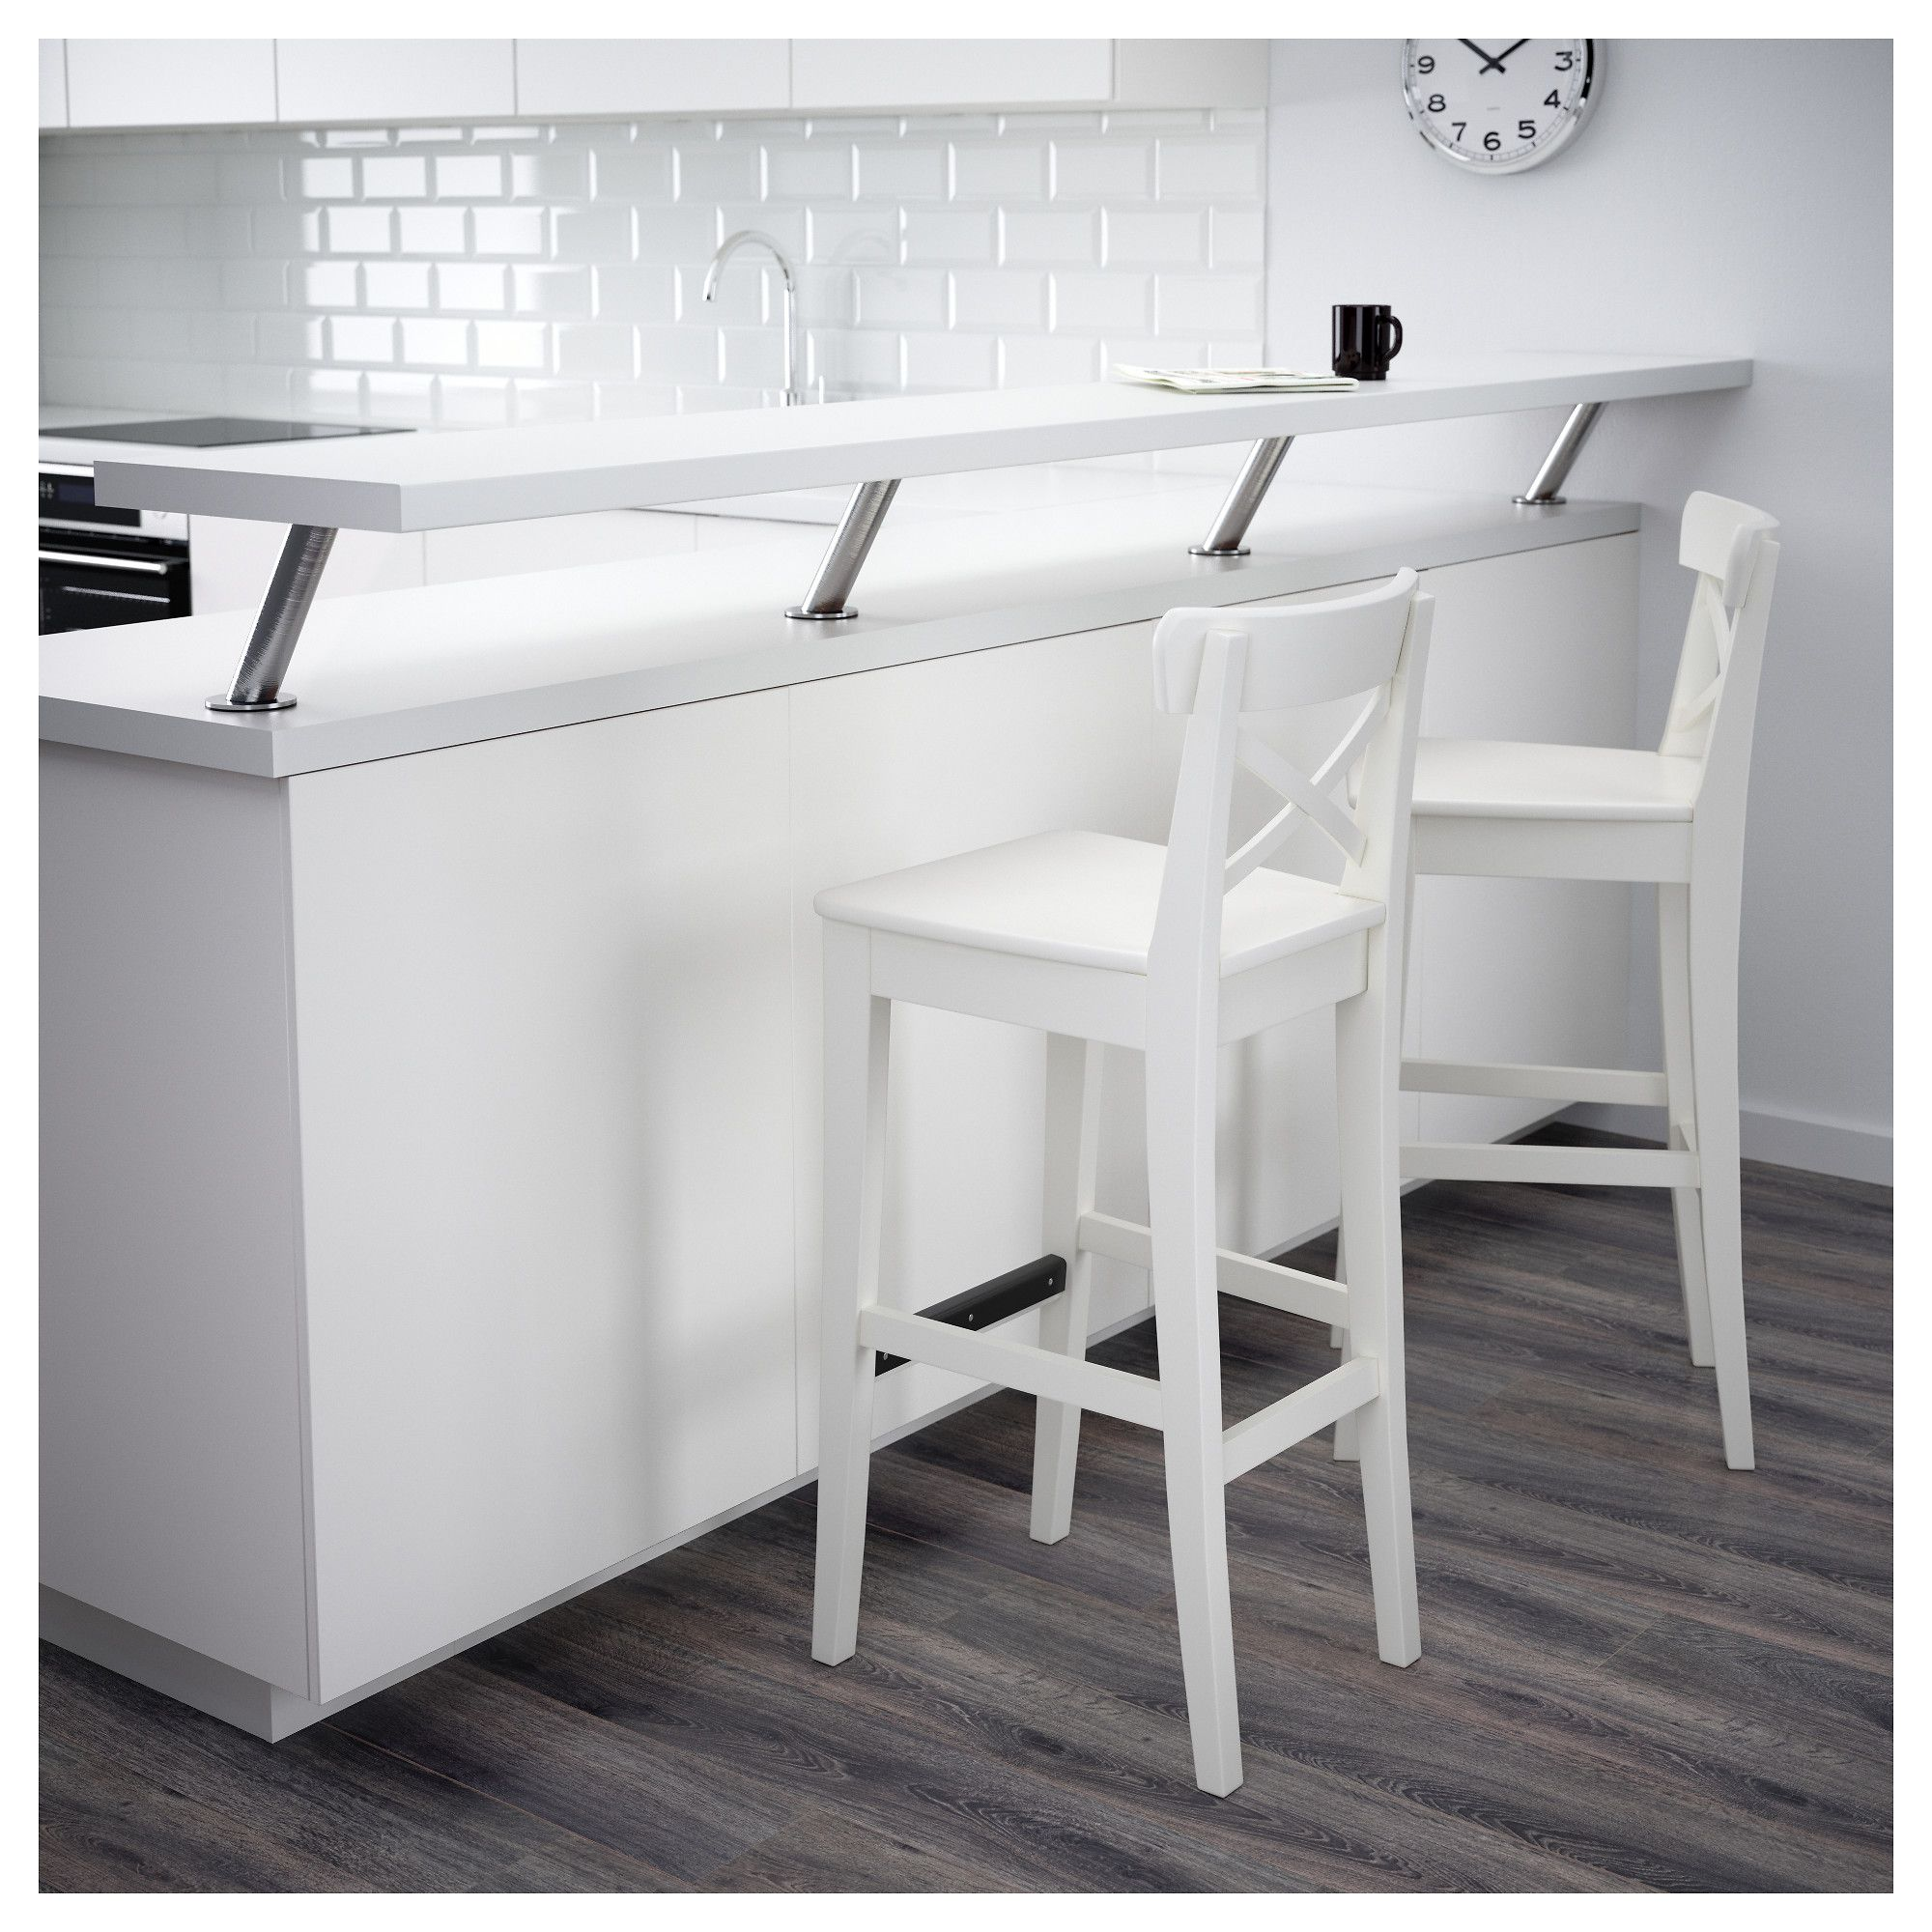 Ikea Ingolf Bar Stool With Backrest White Products